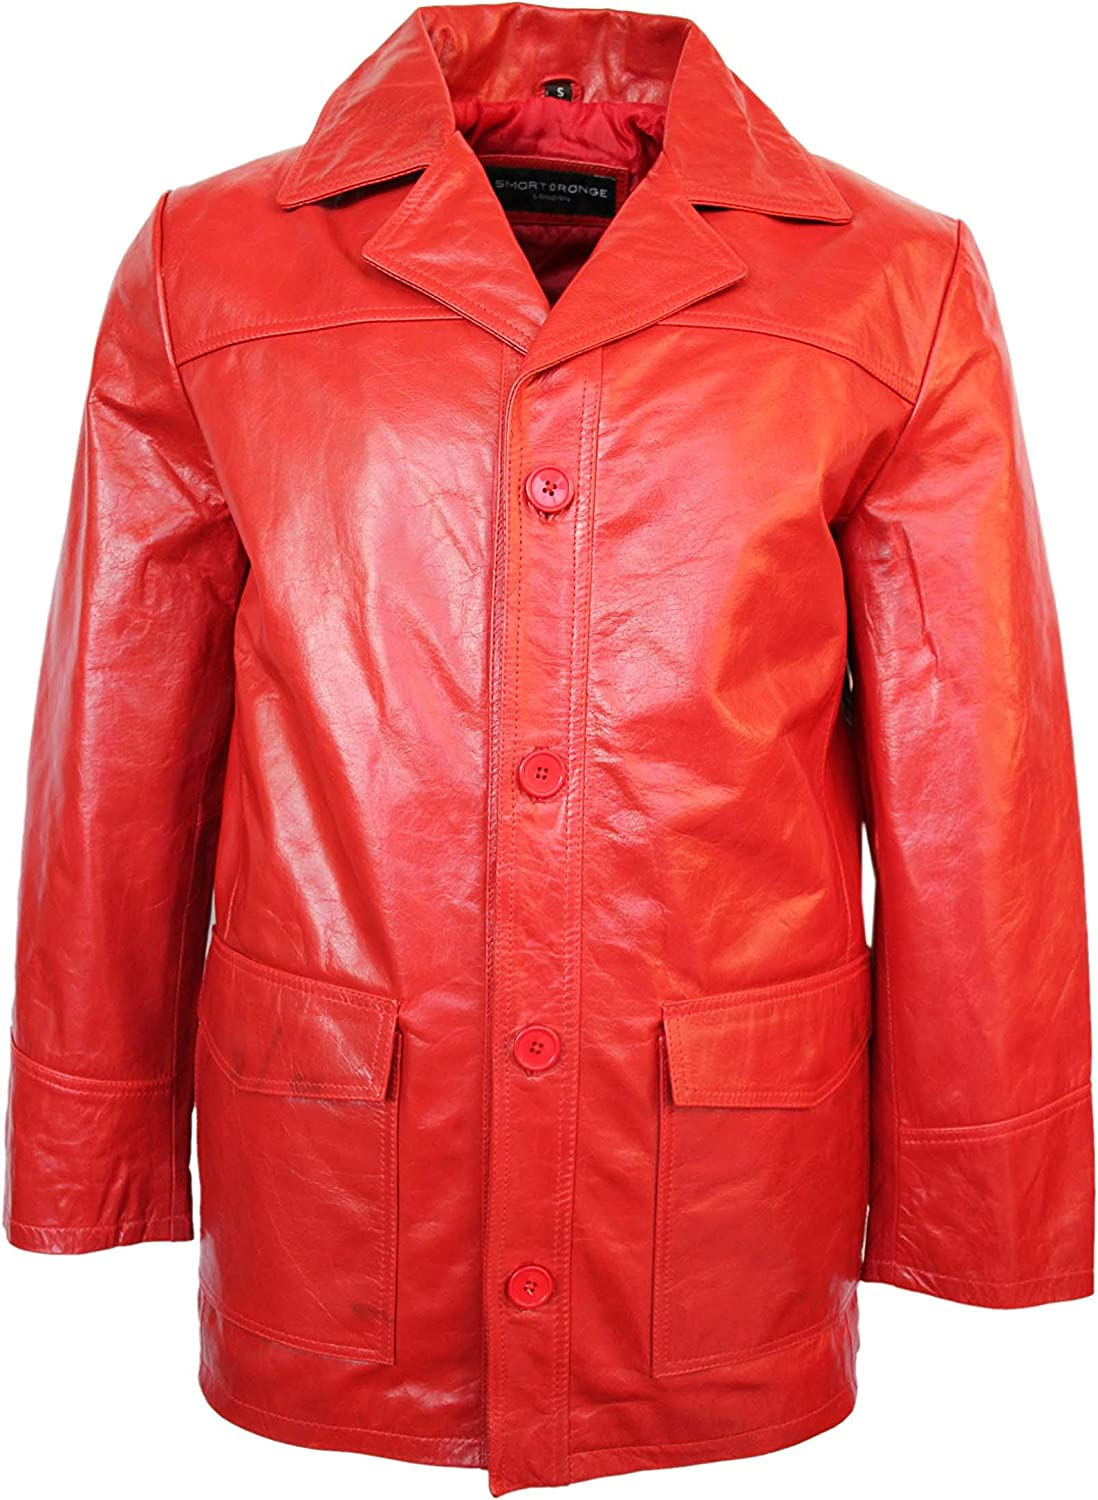 Fight Club' Men's RED Hollywood Film Movie Style Leather Reefer Jacket Coat